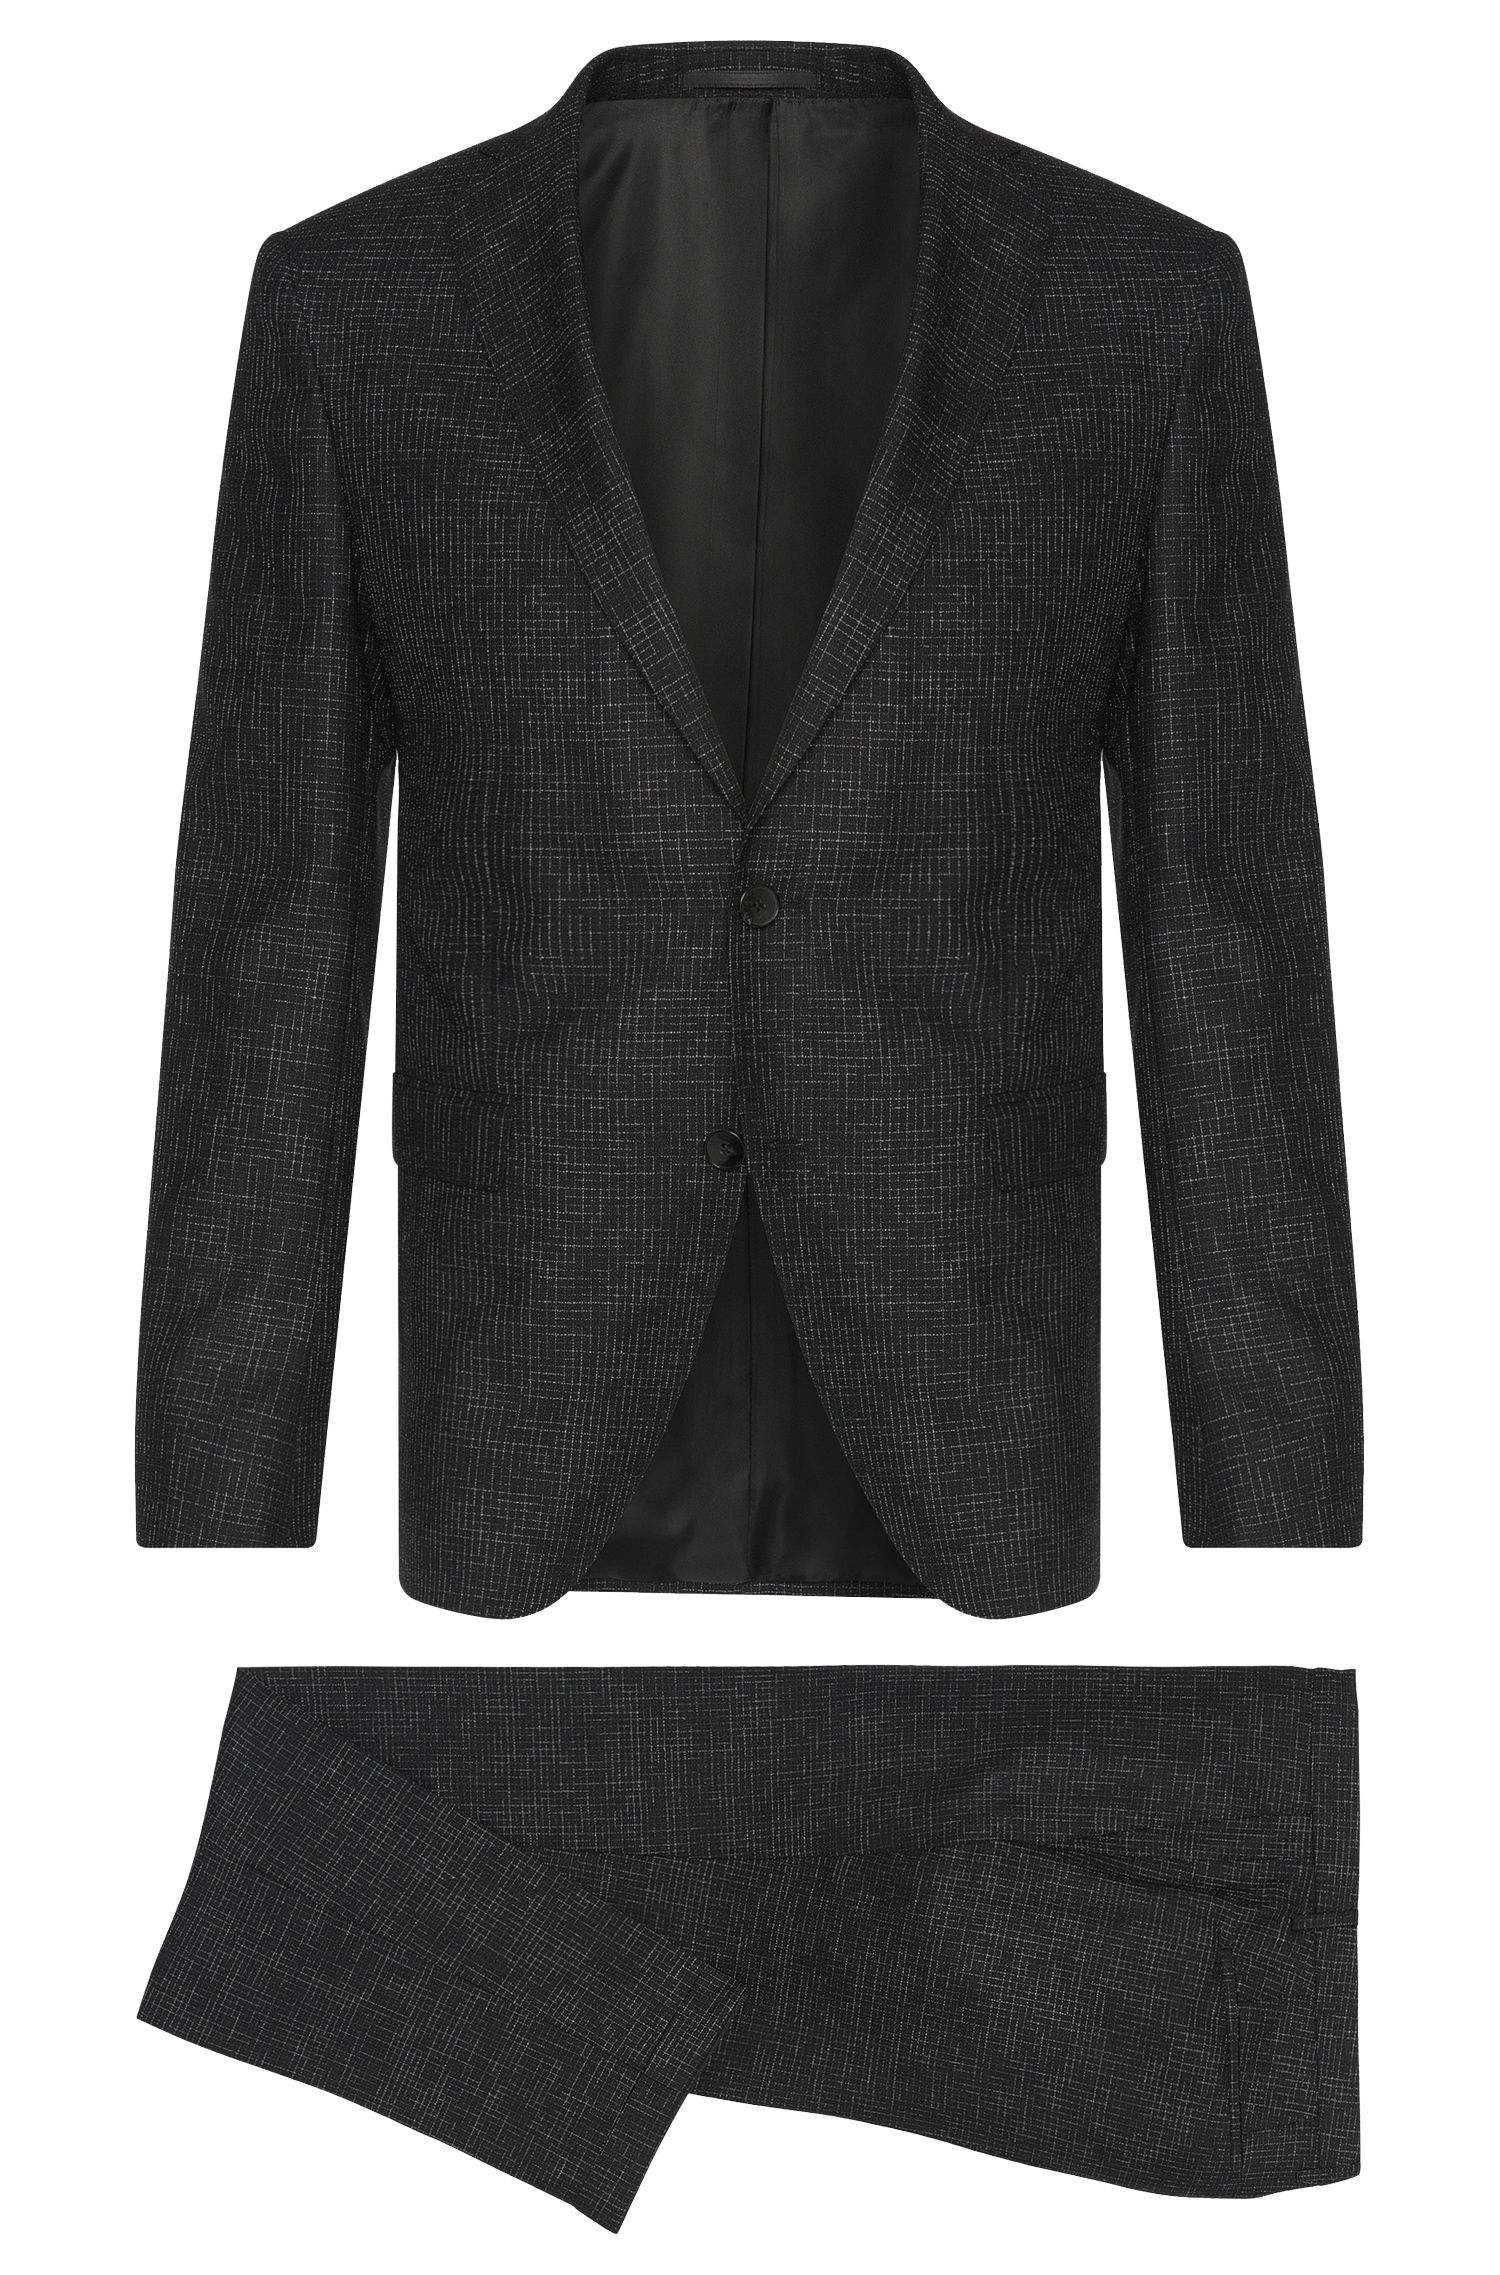 'Reyno/Wave' | Extra Slim Fit, Super 100 Italian Virgin Wool Suit